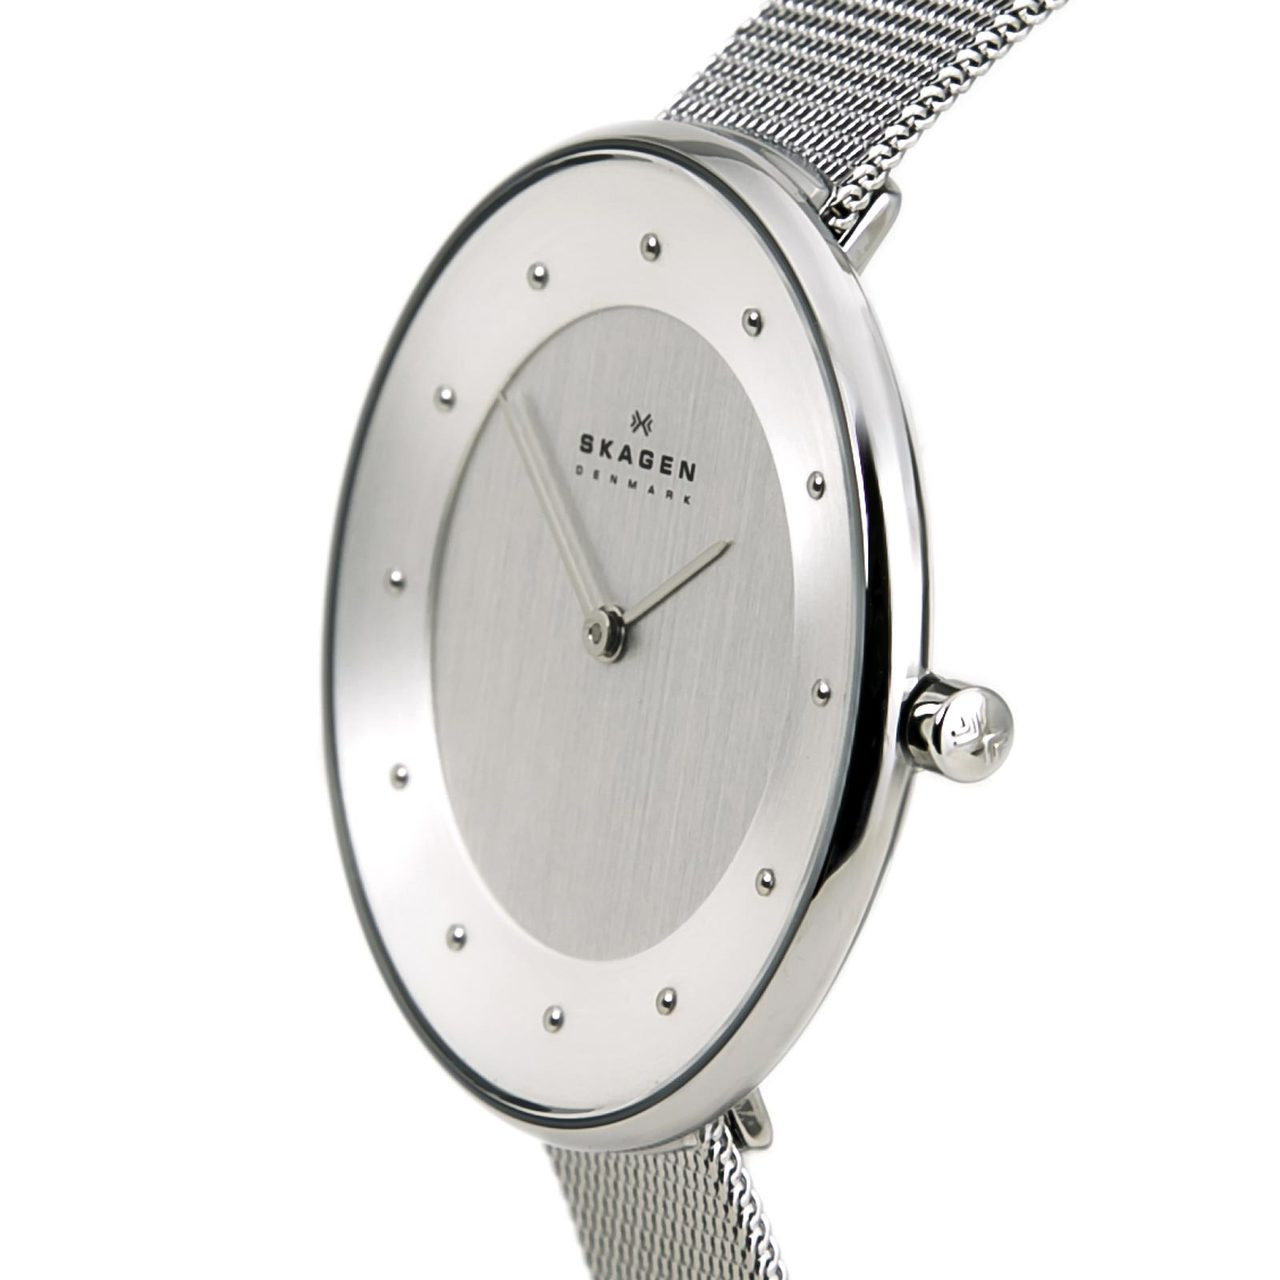 Watch Review - Skagen SKW2140 Ladies Silver Watch